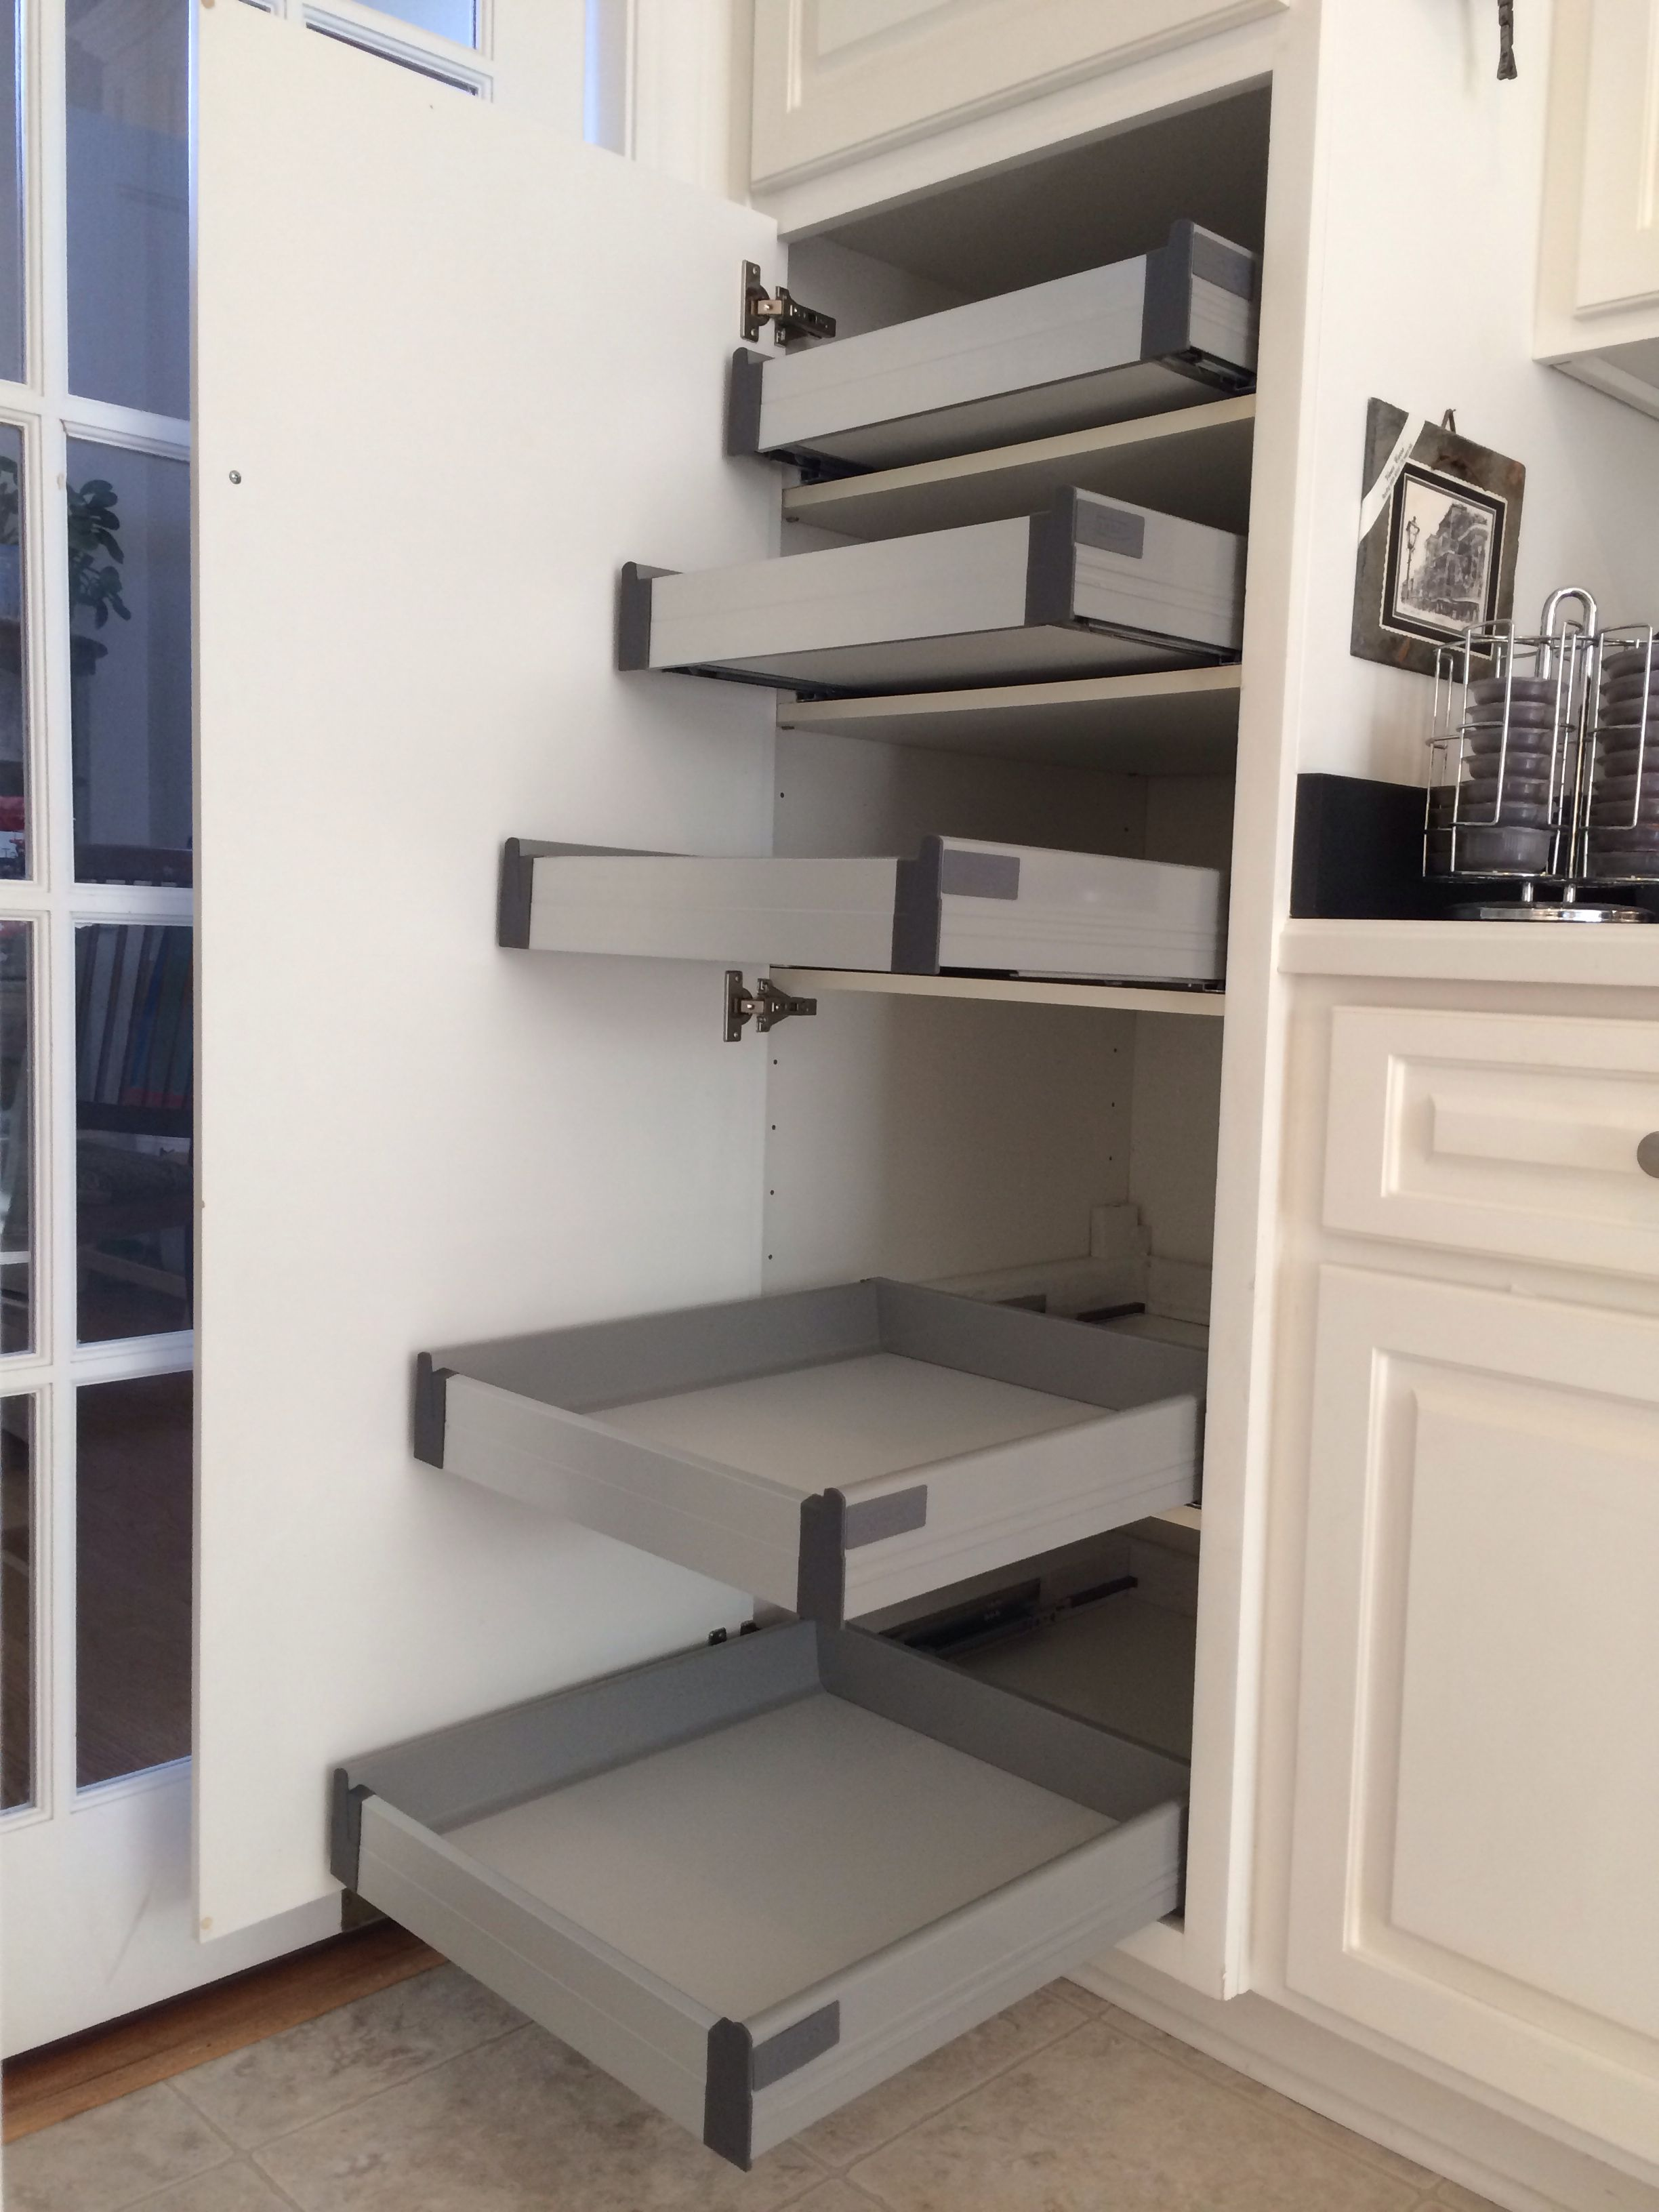 IKEA Rationell pull-out shelves (w/ dampers) retrofitted to non-IKEA cabinet  pantry using existing shelves.